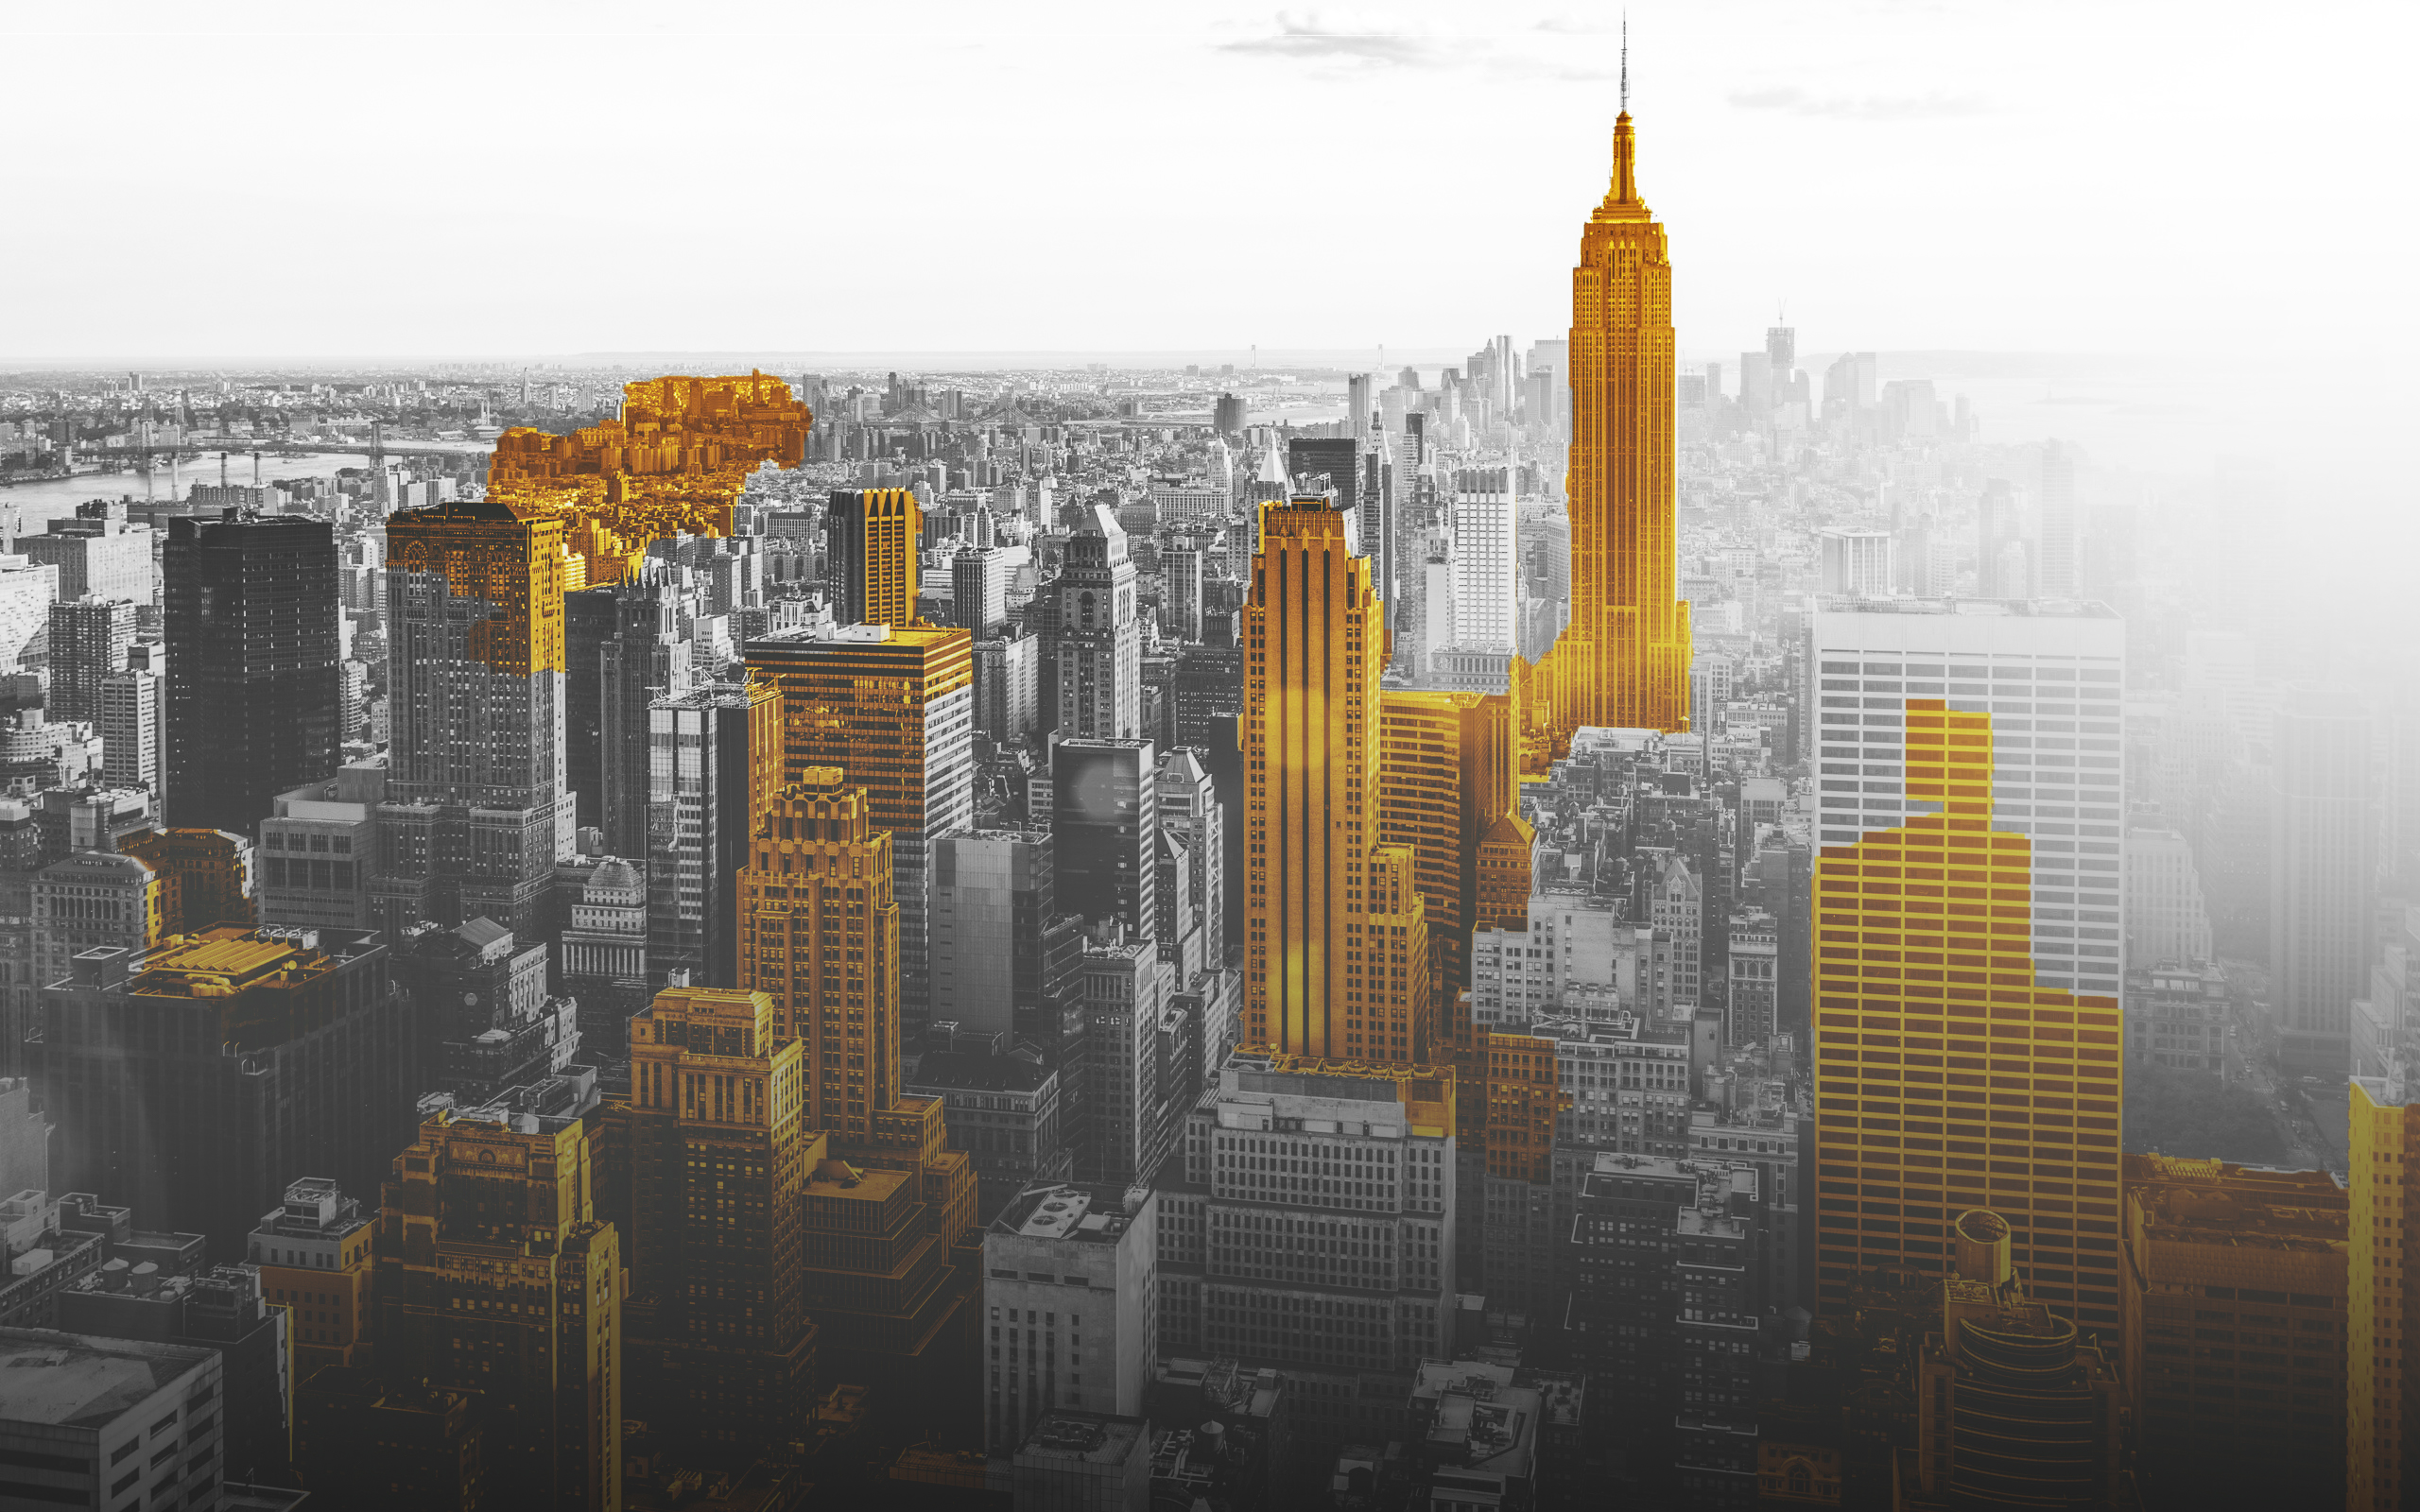 Gold City Black And Whit Digital Art New York City USA Selective Coloring Cityscape 2560x1600